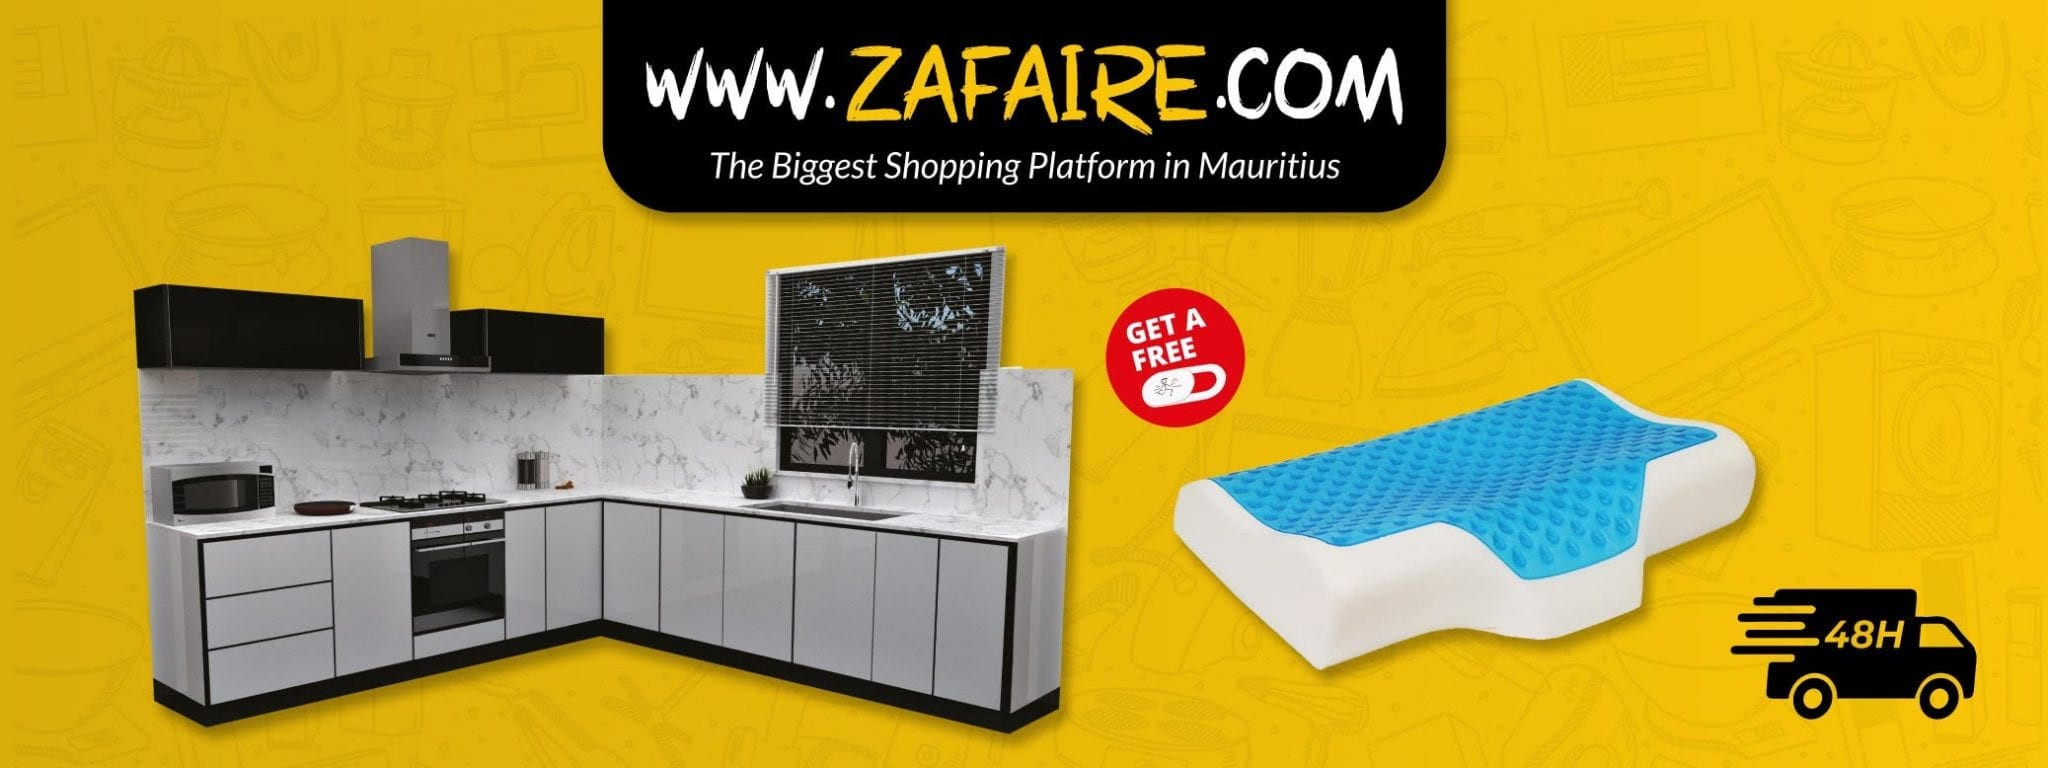 zafaire.com Kitchenzone